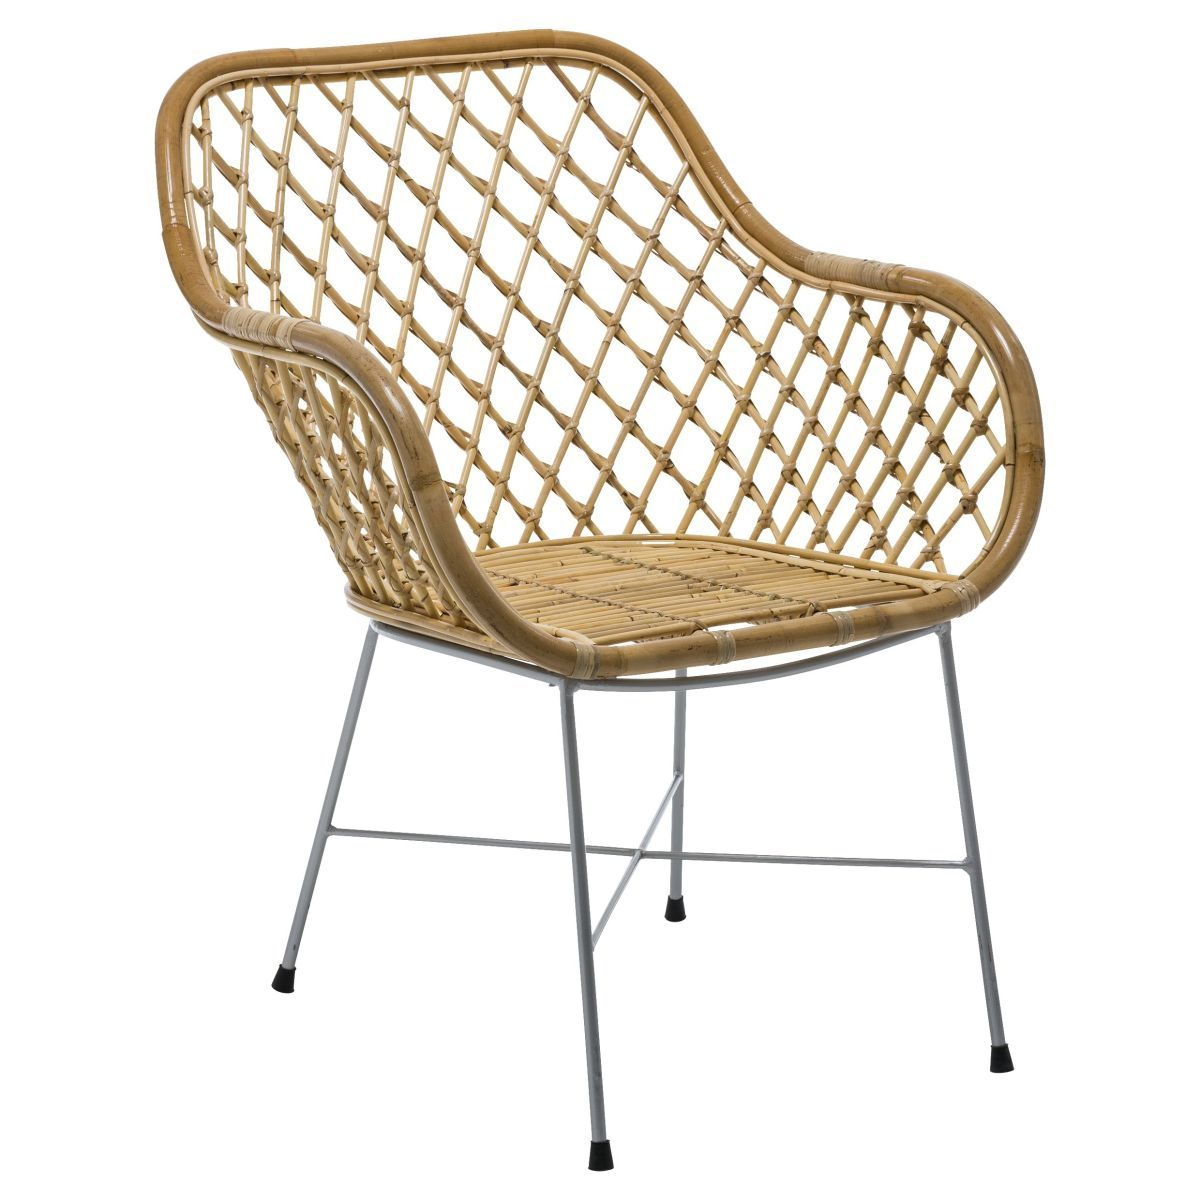 Butler Sessel Related Image Wicker And Rattan Korbstühle Rattansessel